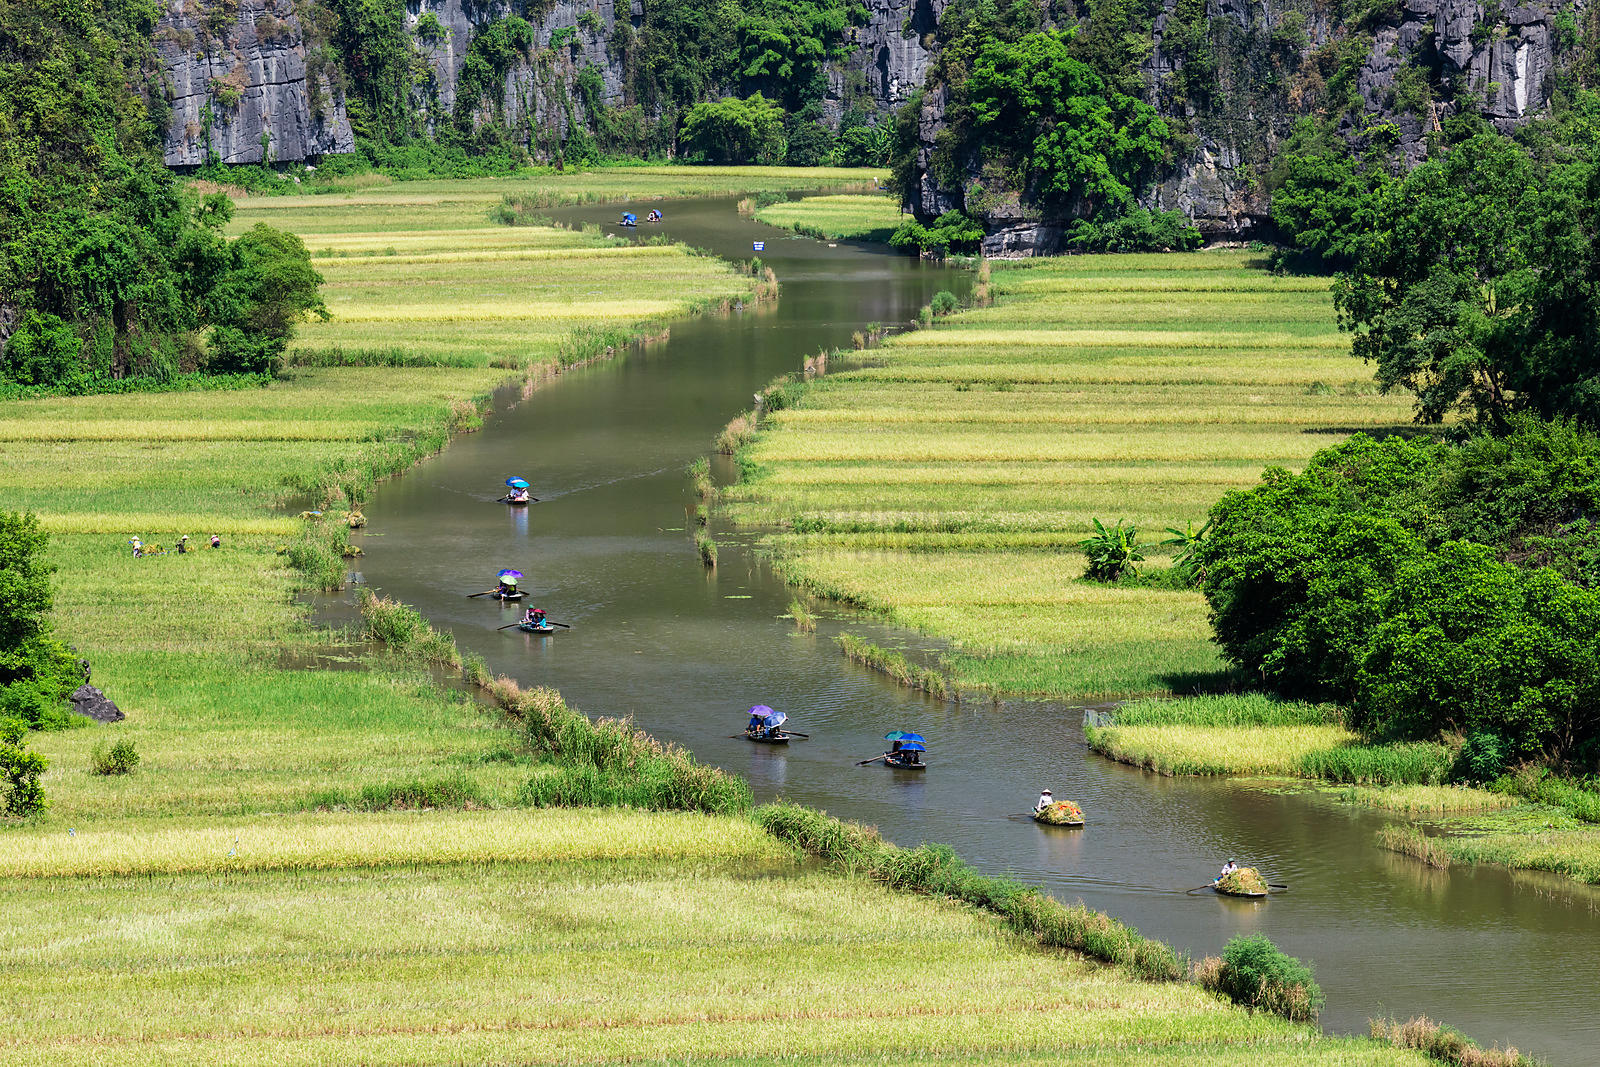 Elevated View of Boats Carrying Rice Harvest and Tourists